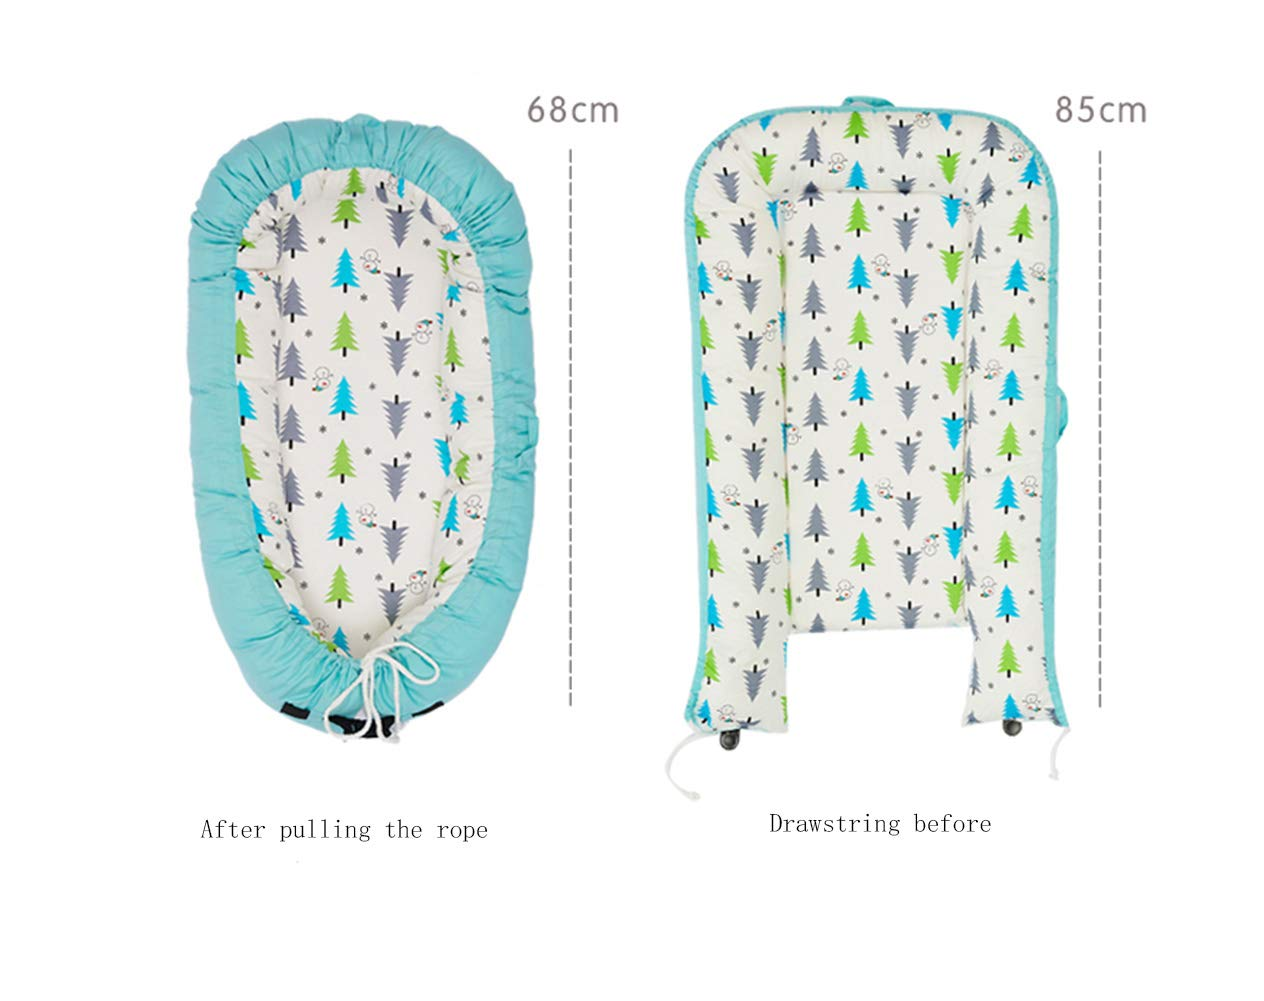 LNDD-2 in 1 Baby Nest Cushion Cocoon Baby Lounger Bionic Uterine Cradle Mattresses Travel Bumpers,Blue LNDD ★CARE FOR THE BABY'S SPINE: The sponge mattress fits the baby's back, moderately soft and hard, and the sleep is evenly applied for a long time. ★RETRACTABLE DESIGN: buckle drawstring design Telescopic adjustment Different ages Different comfort spaces. ★MULTI-FUNCTION: windproof and anti-mosquito shading, easy to use, handle design foldable, easy to carry out and easy to take 2